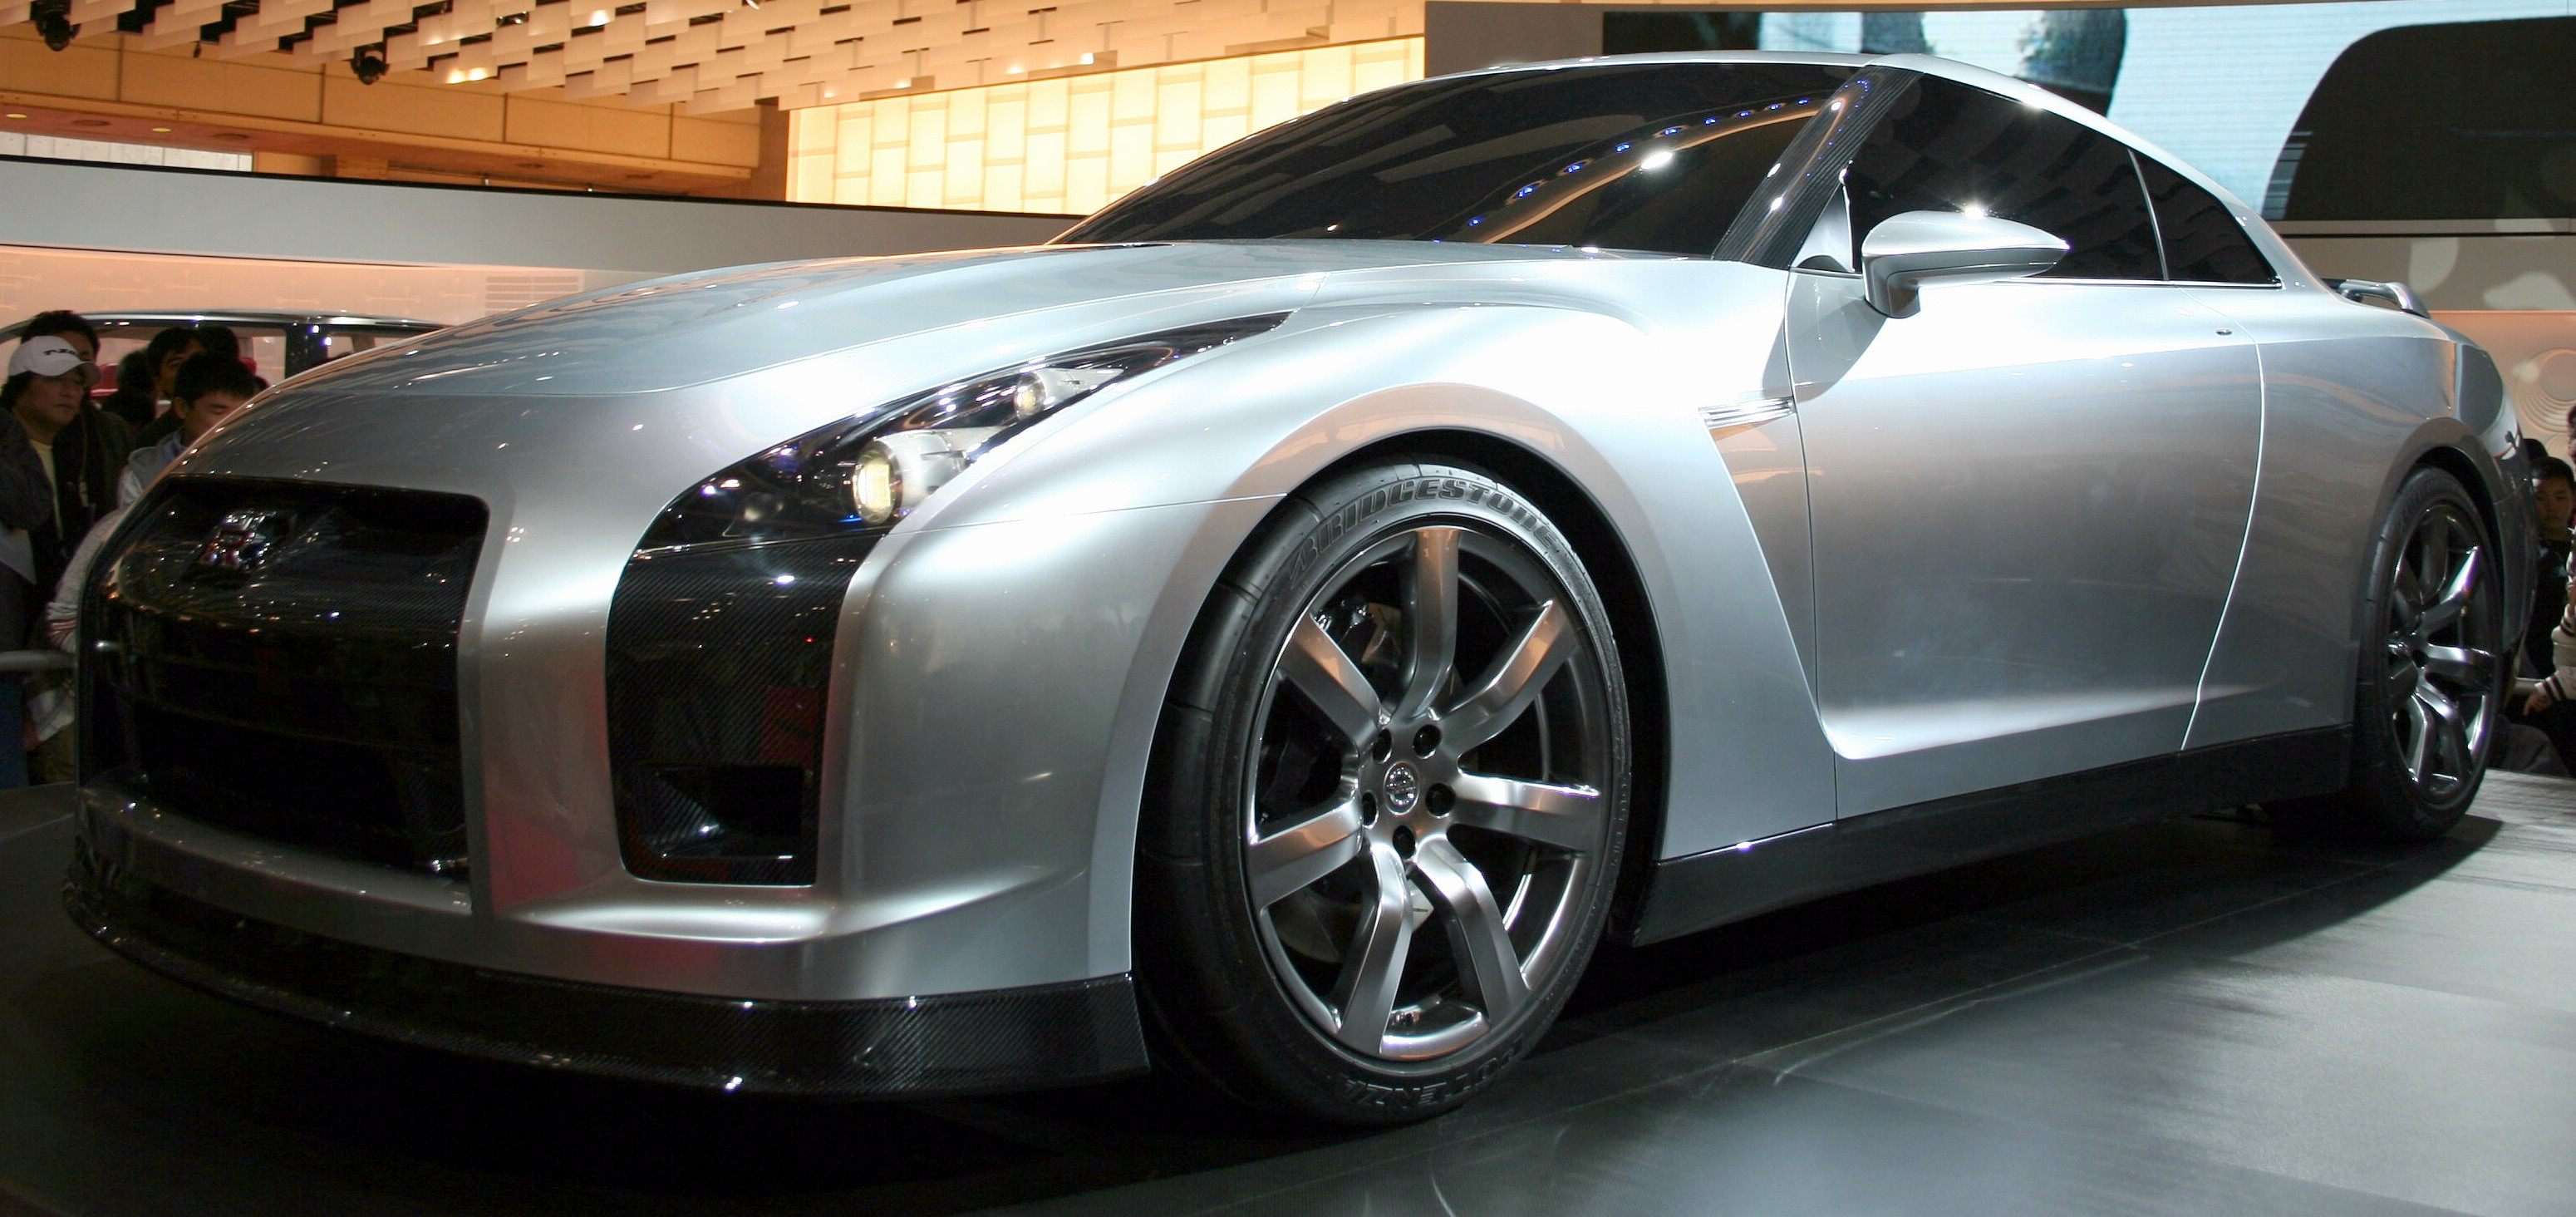 file:nissan gt-r 2005 tms 1 - wikimedia commons